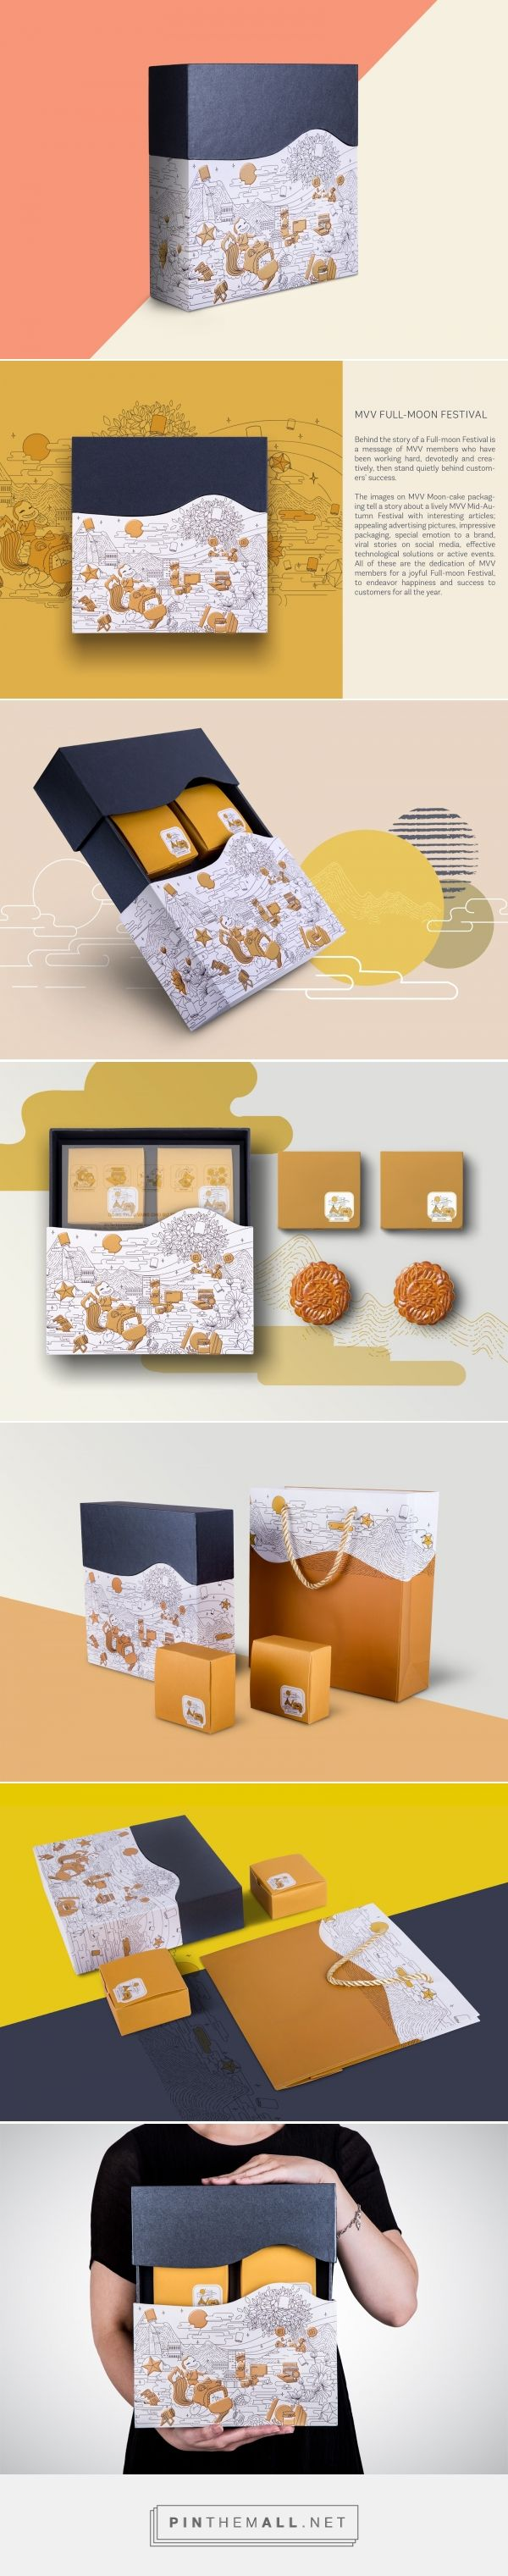 MVV Moon-cake Packaging - Packaging of the World - Creative Package Design Gallery - http://www.packagingoftheworld.com/2016/09/mvv-moon-cake-packaging.html